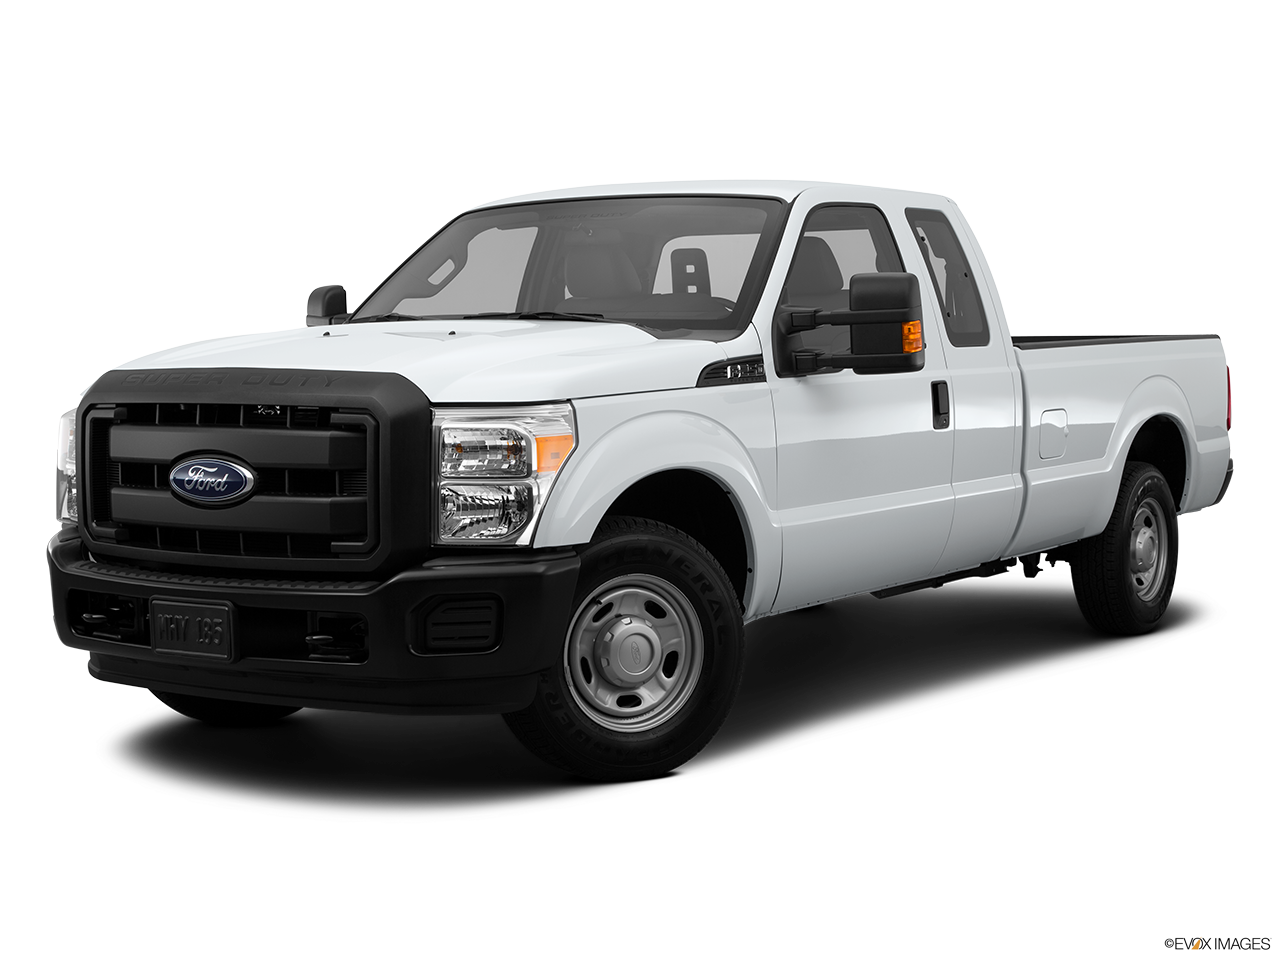 Test drive a 2015 ford super duty at doenges ford in tulsa